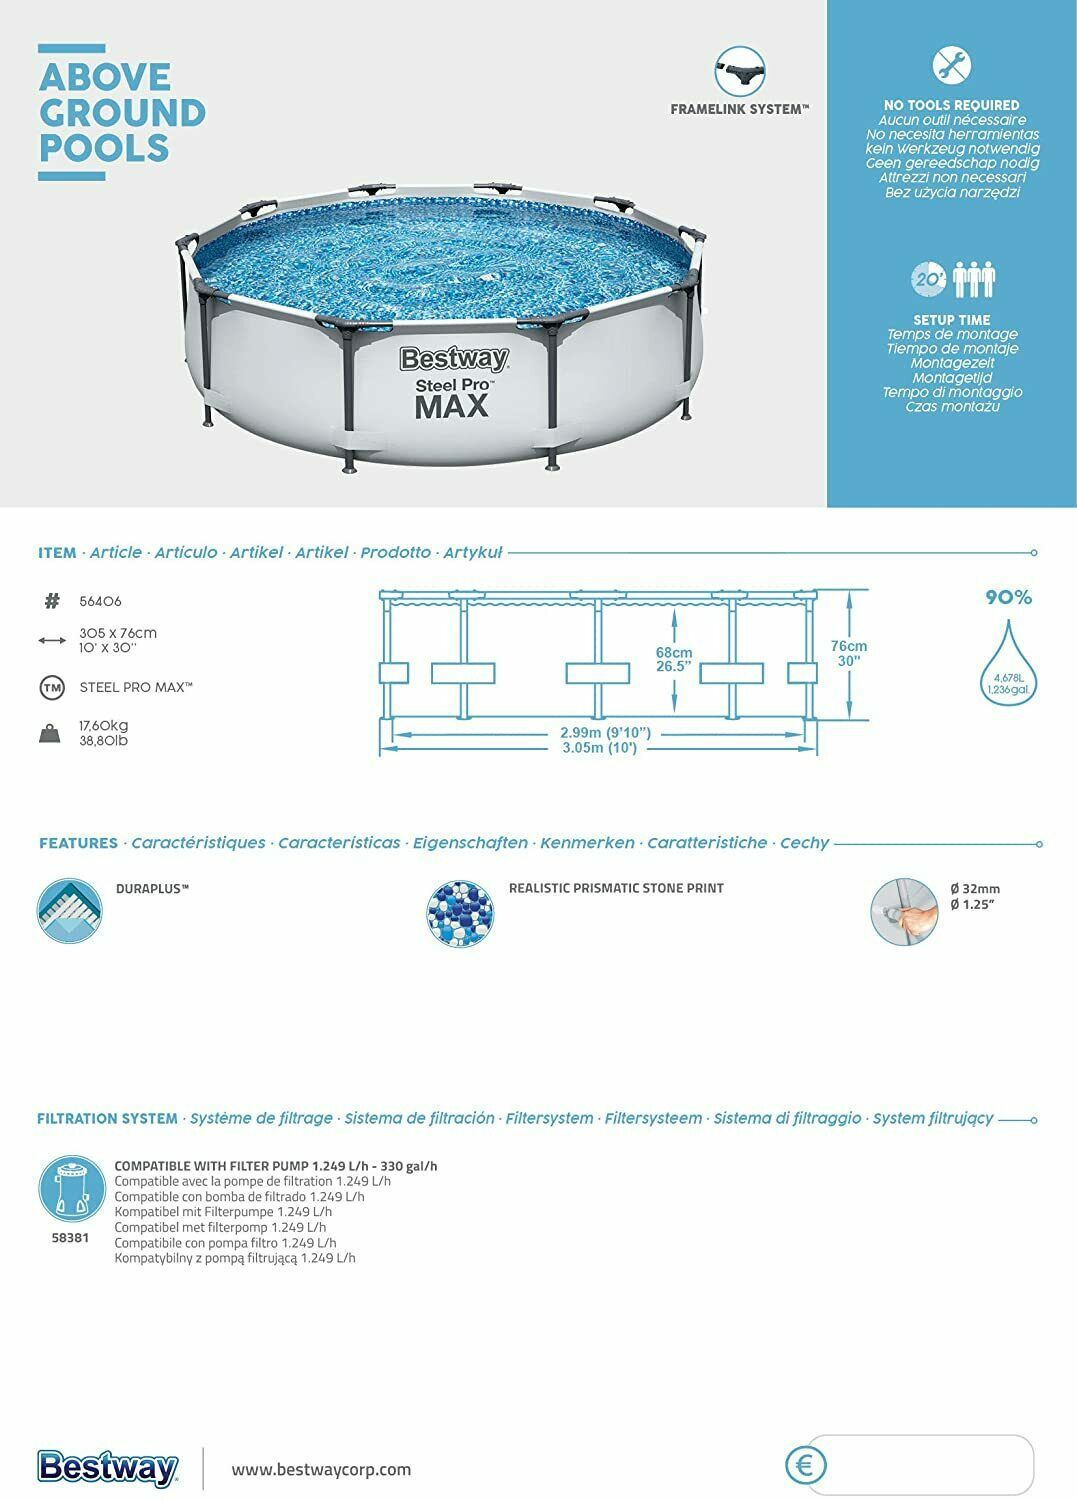 BRAND NEW Bestway Swimming Pool Steel Pro MAX 305 x 76 cm!! ✅ FREE DELIVERY!! 🚚